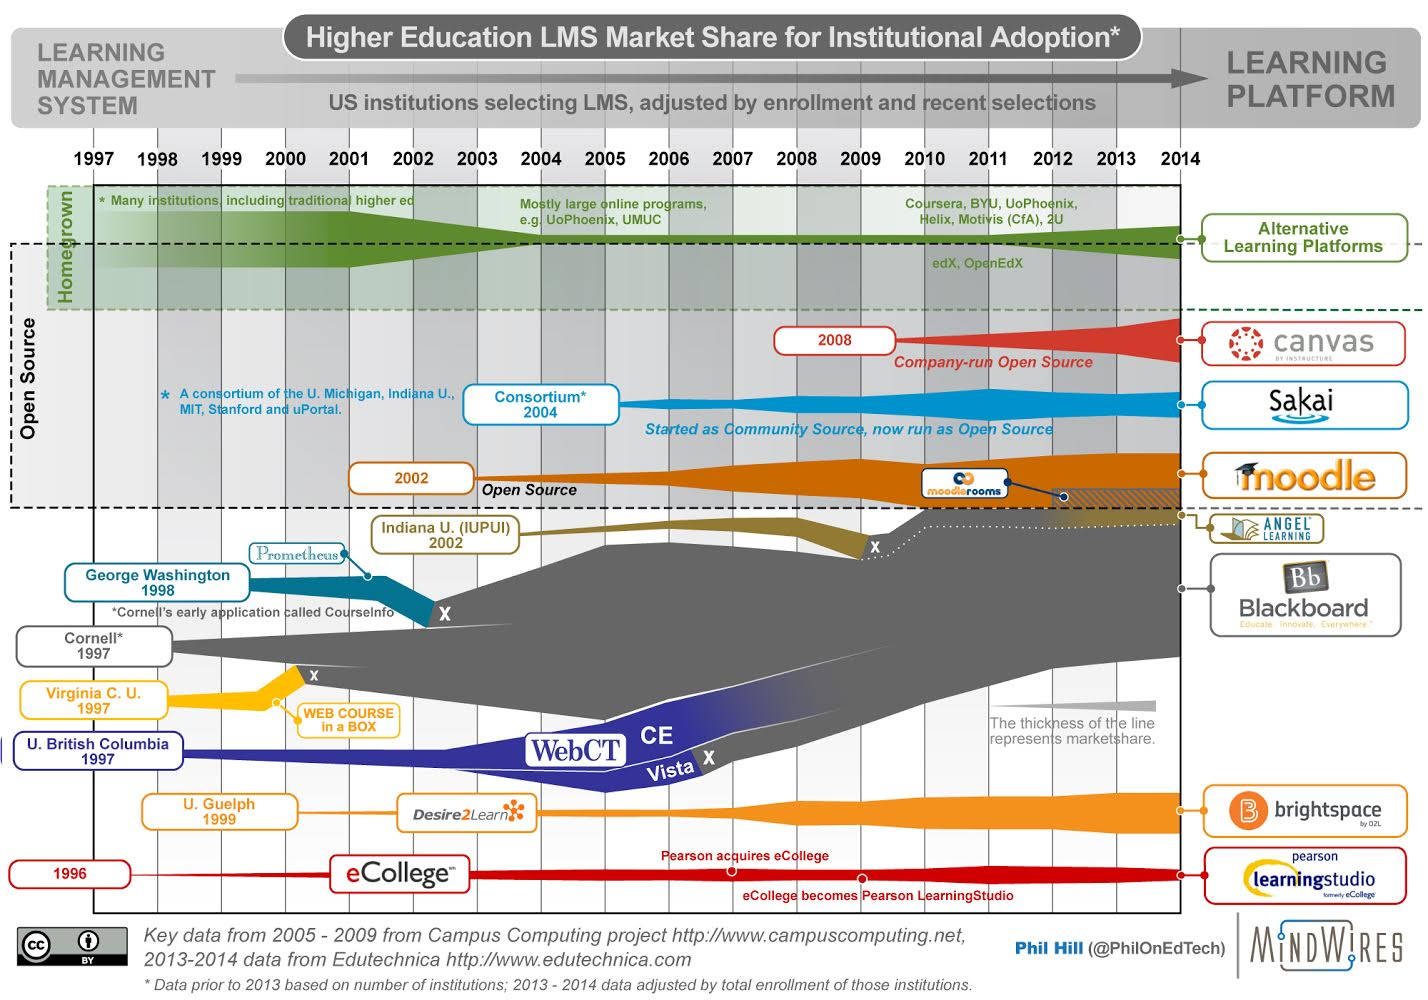 Higher Ed LMS Market Share